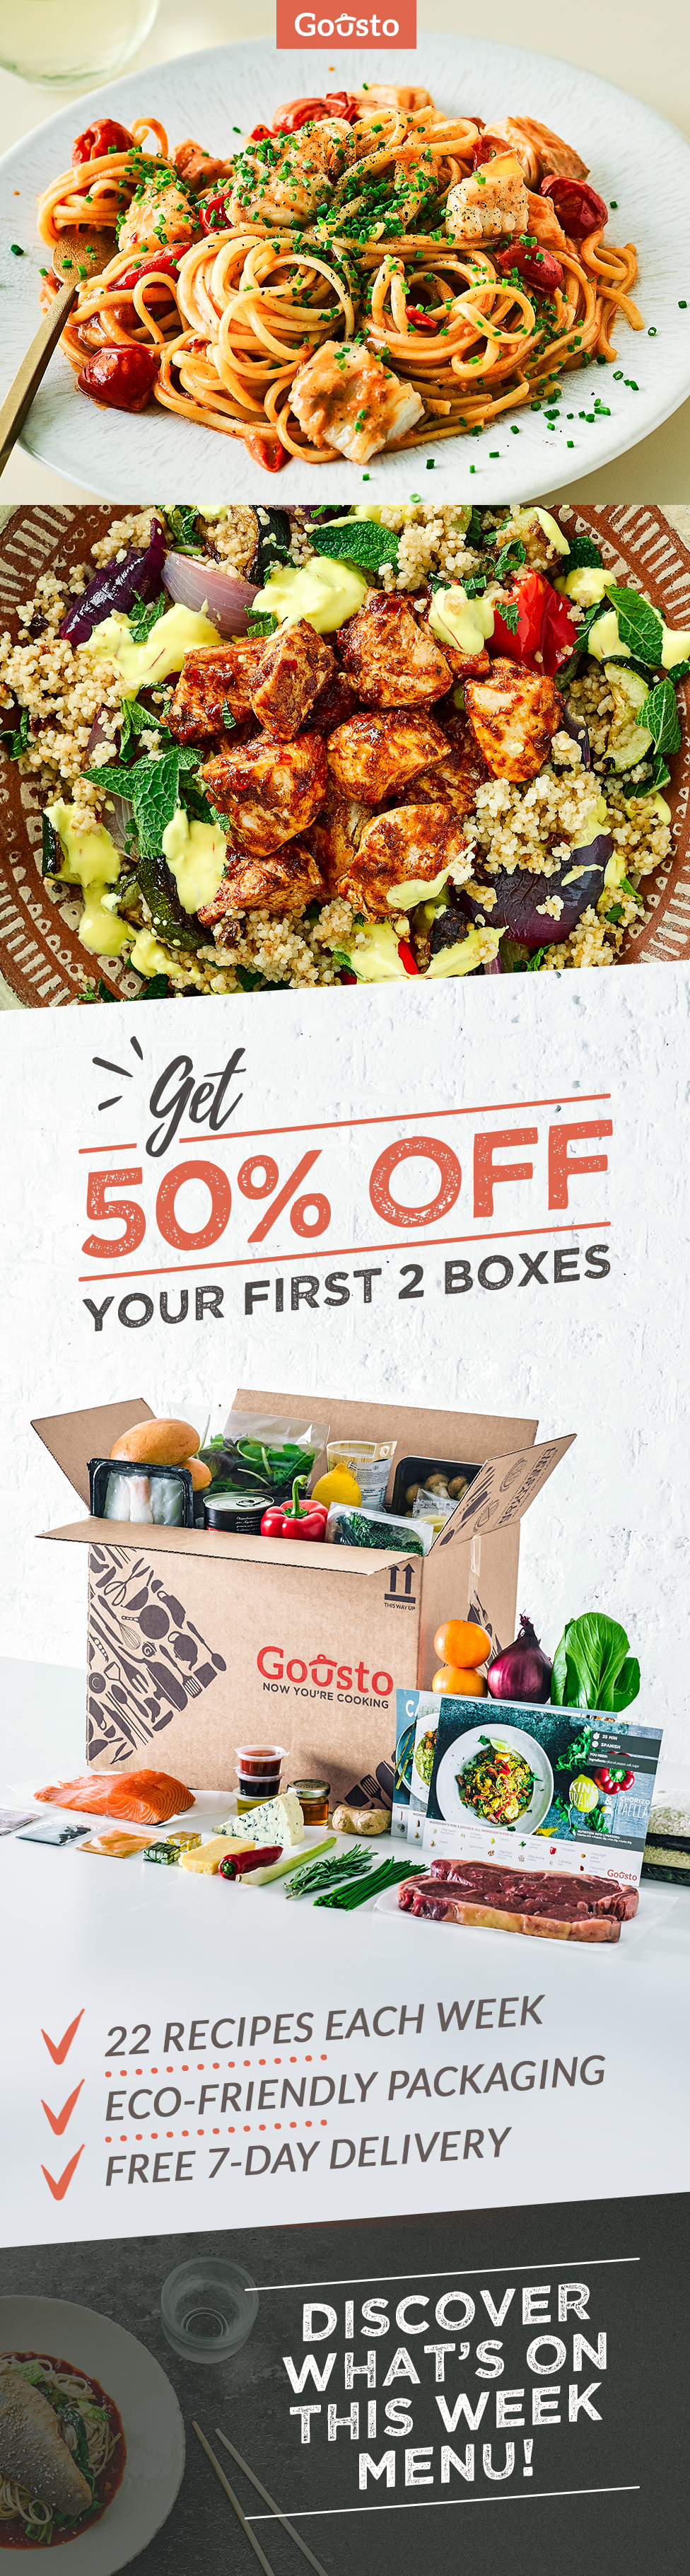 Try gousto now get 50 off your first 2 recipe boxes cooking made try gousto now get 50 off your first 2 recipe boxes cooking made forumfinder Image collections